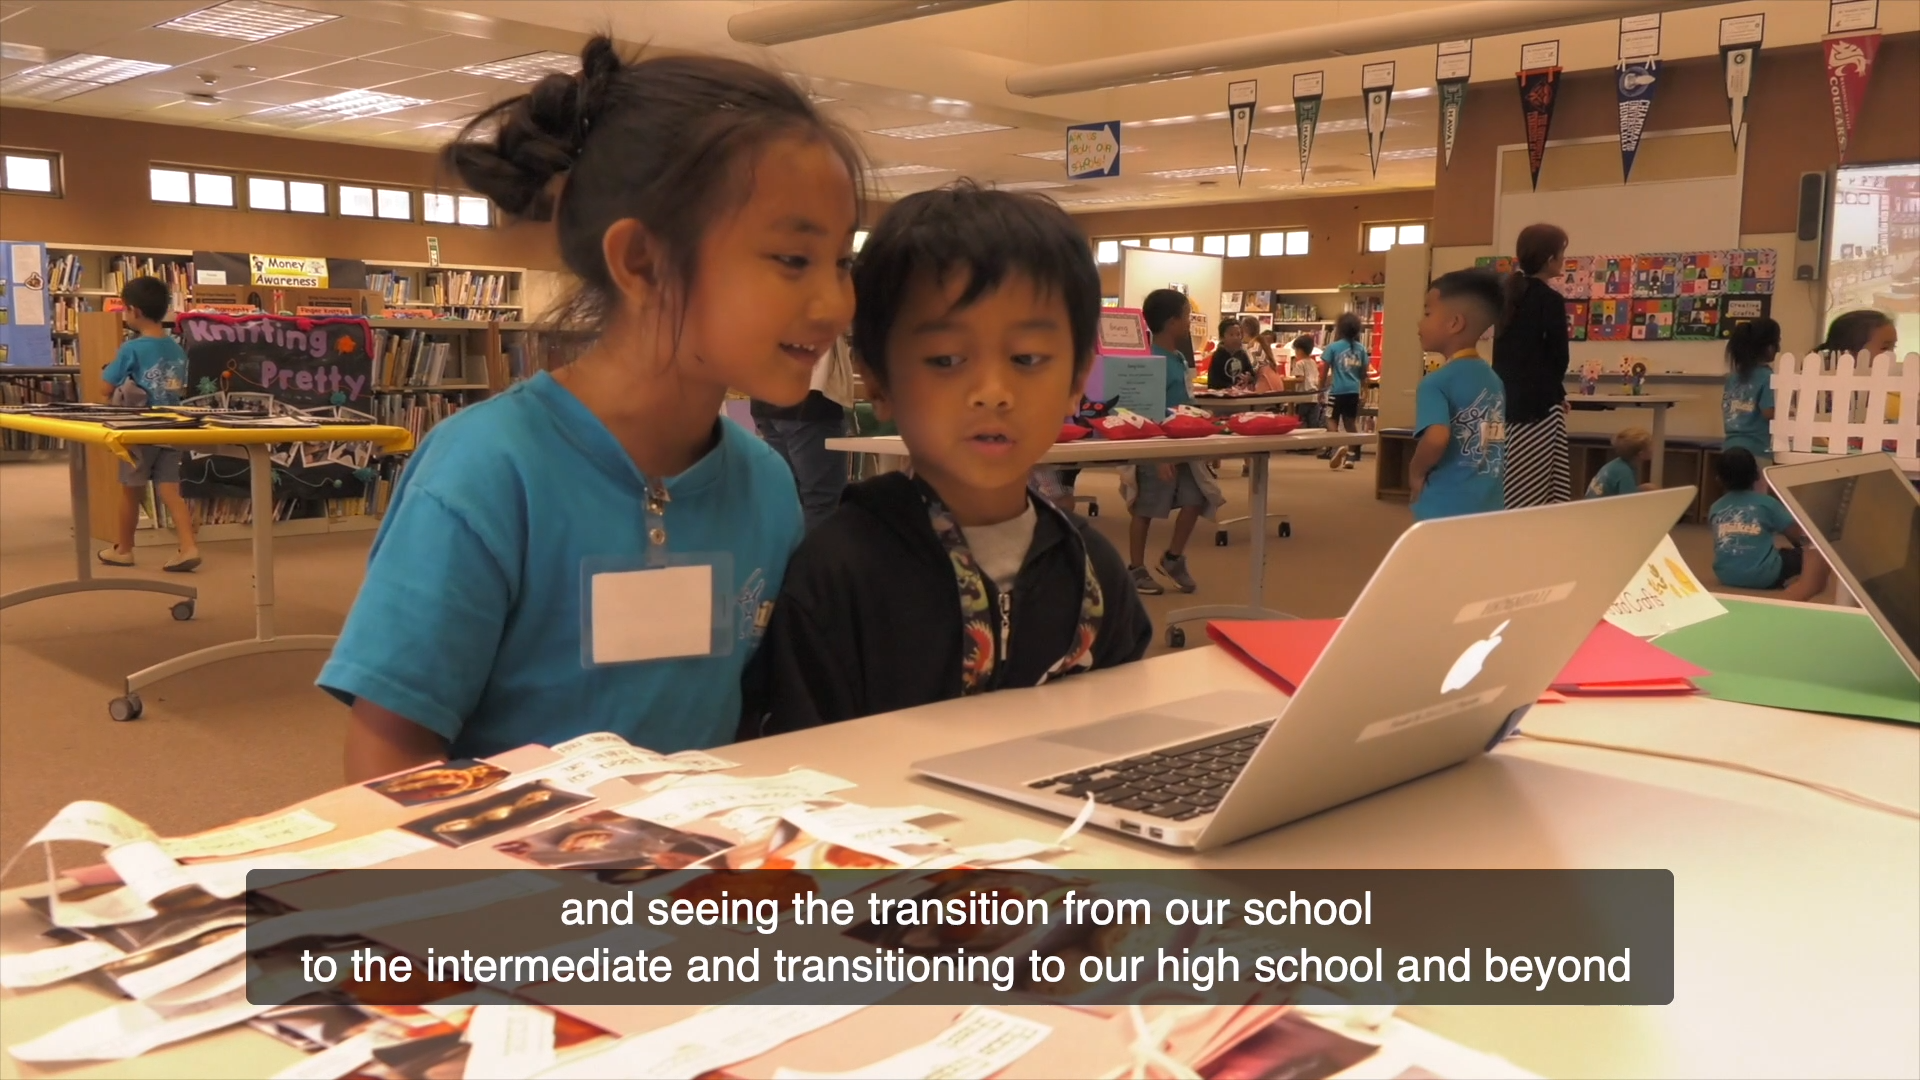 Waikele Elementary fully integrates academy pathways into their school design, preparing students for college, careers and community with explorative learning experiences that spark and shape student passion. #WaikeleRocks #HI4PublicEd